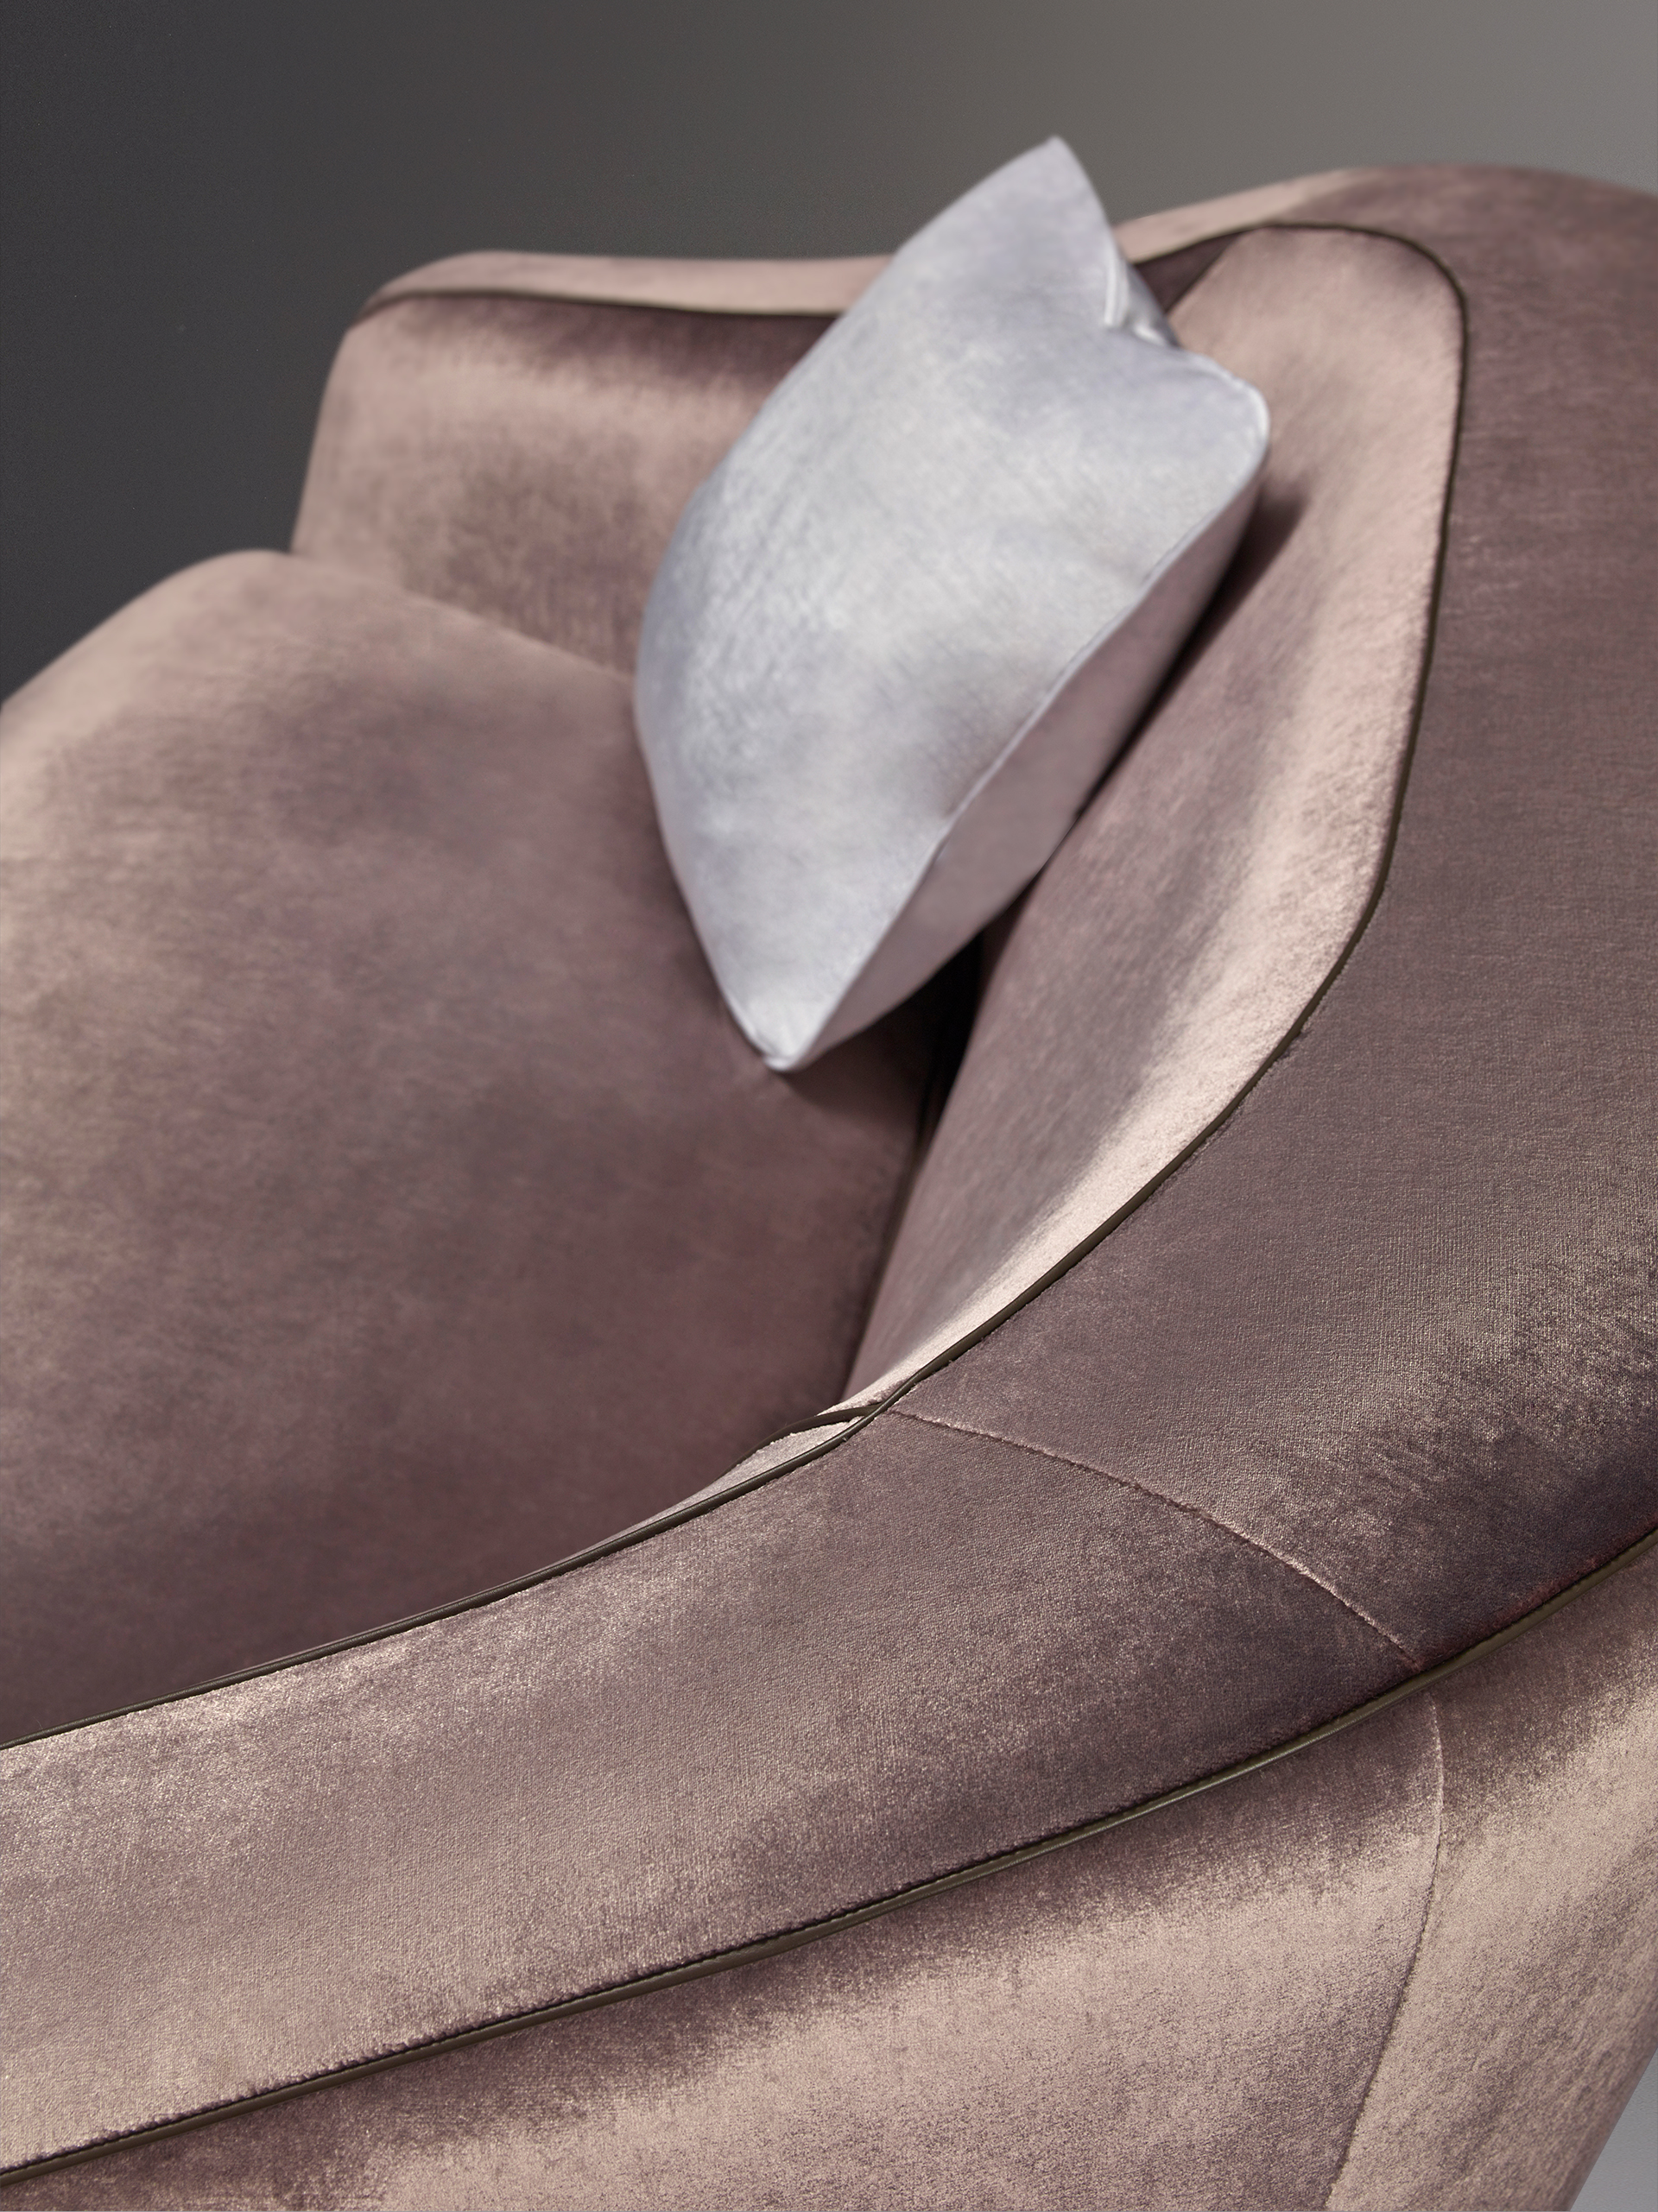 Cushion detail of Fiore di Loto, a sofa covered in fabric or leather, from Promemoria's catalogue | Promemoria